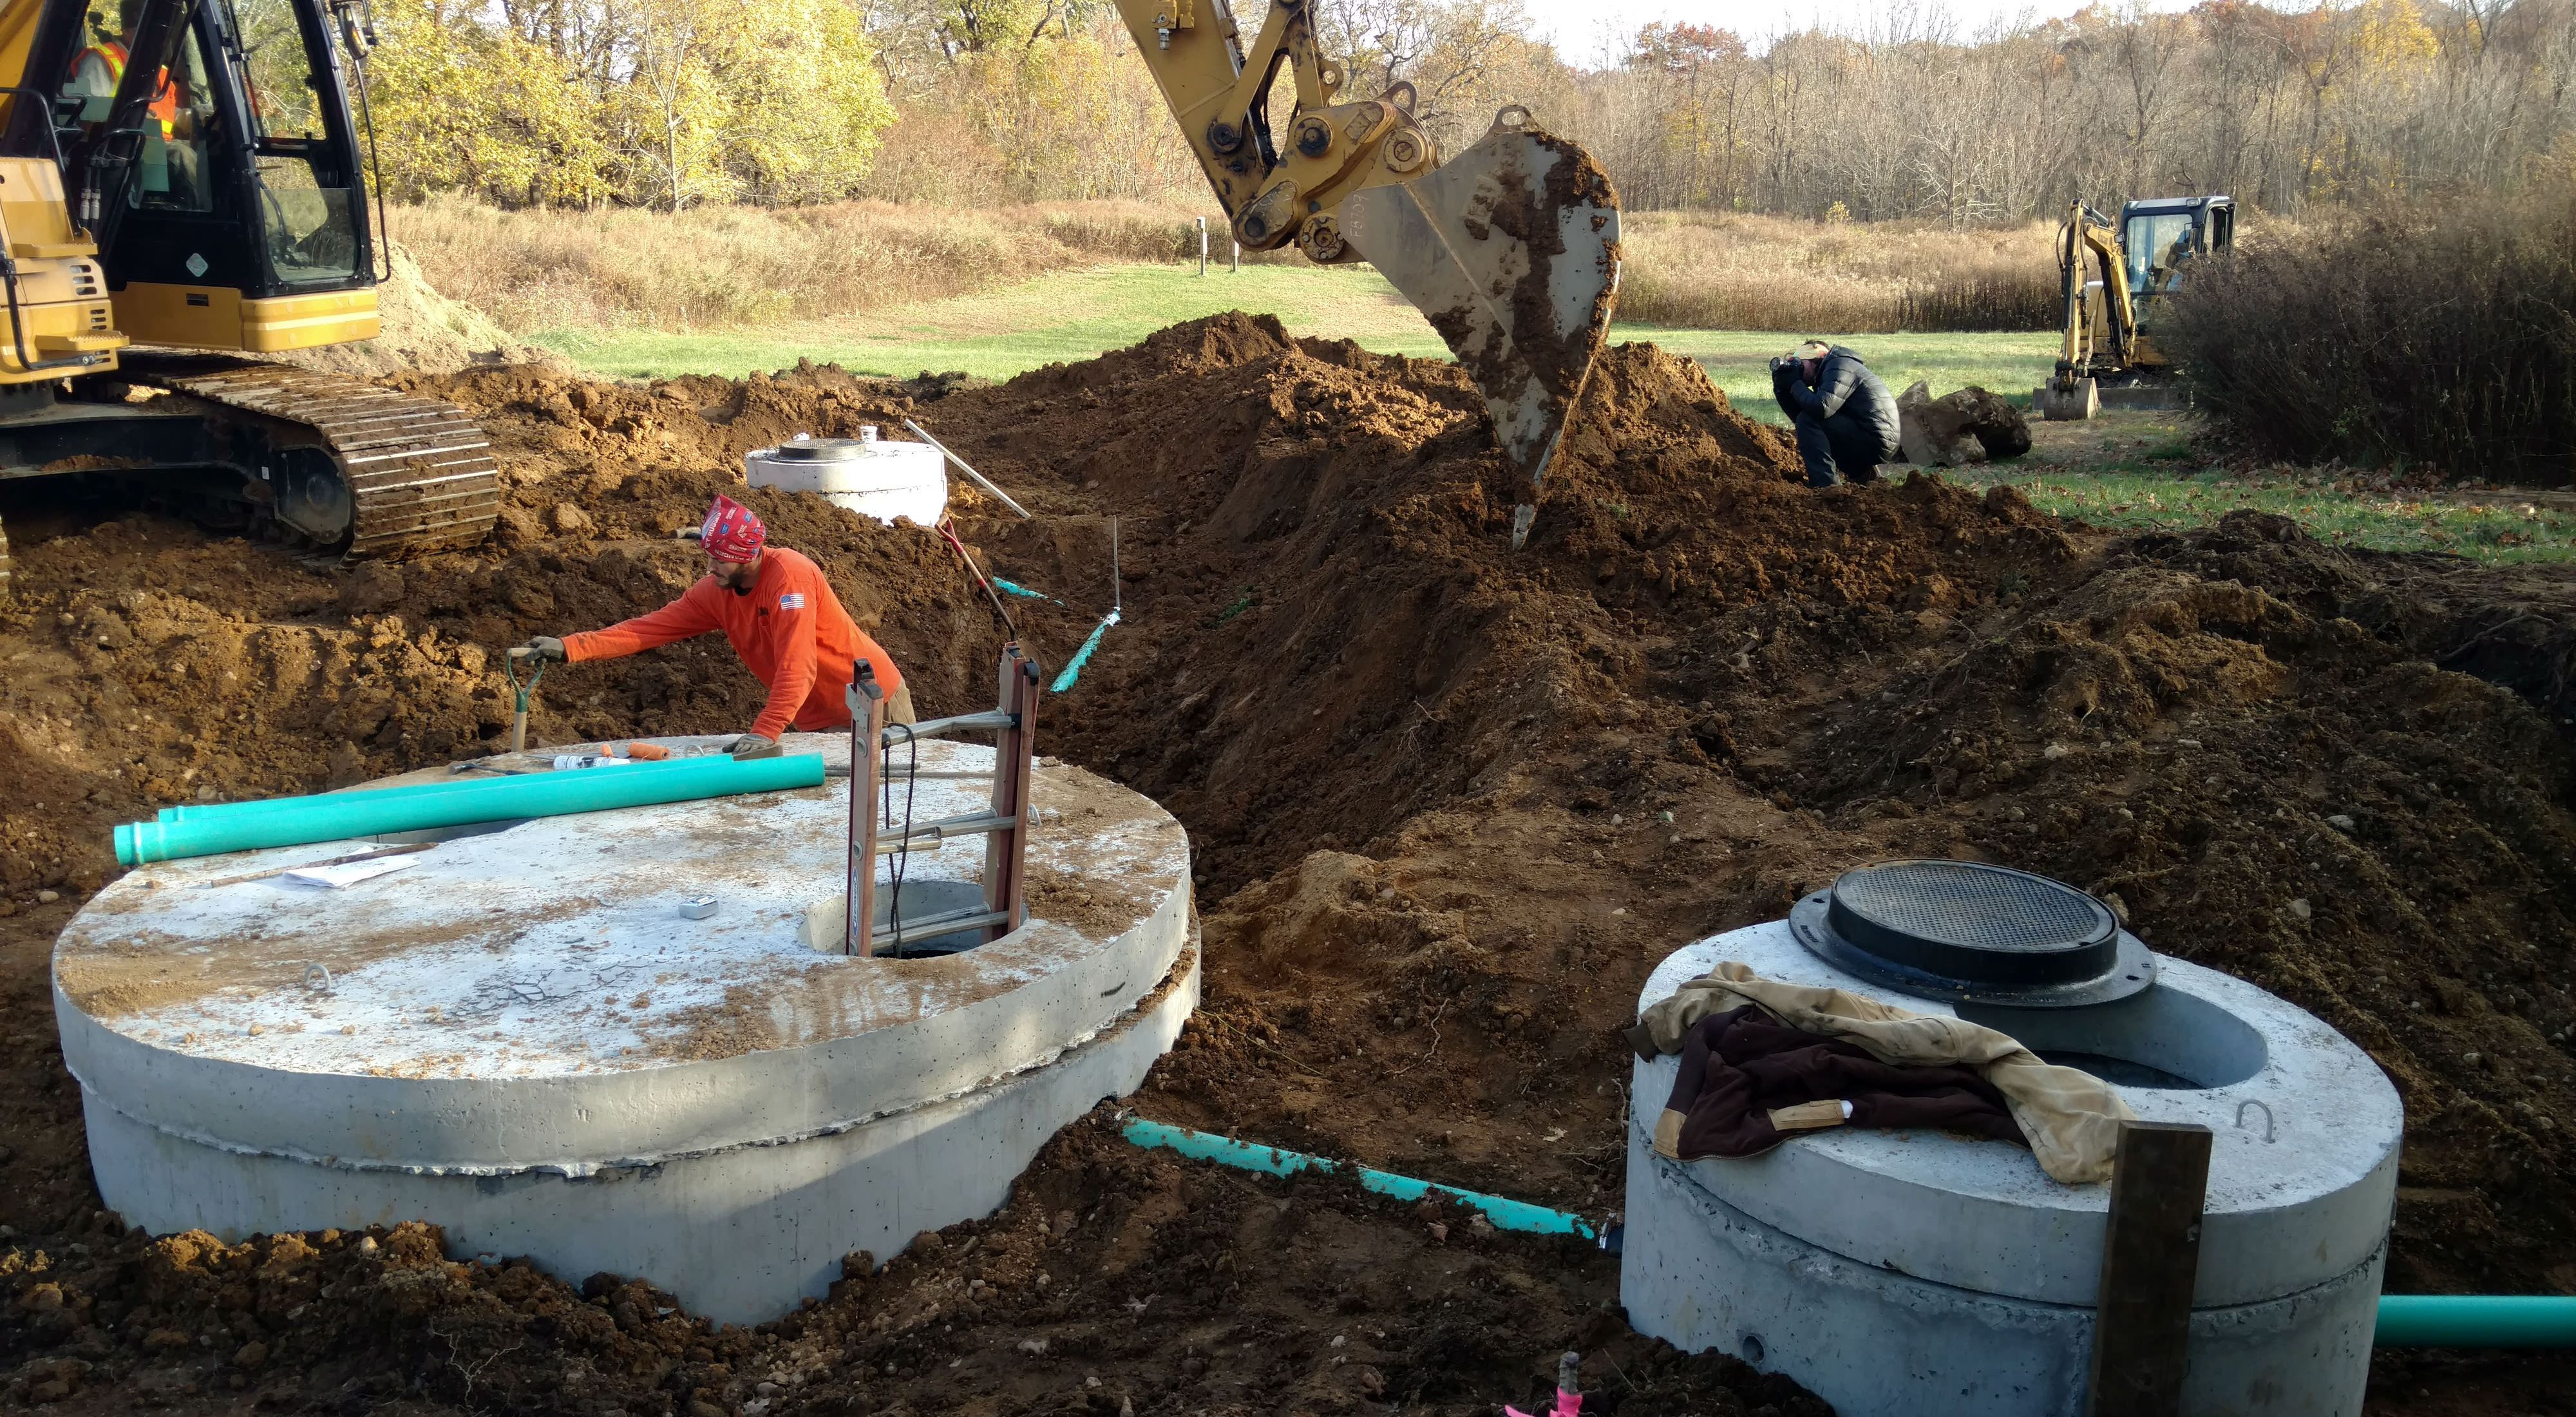 Breaking ground on a project to improve Long Island's water quality